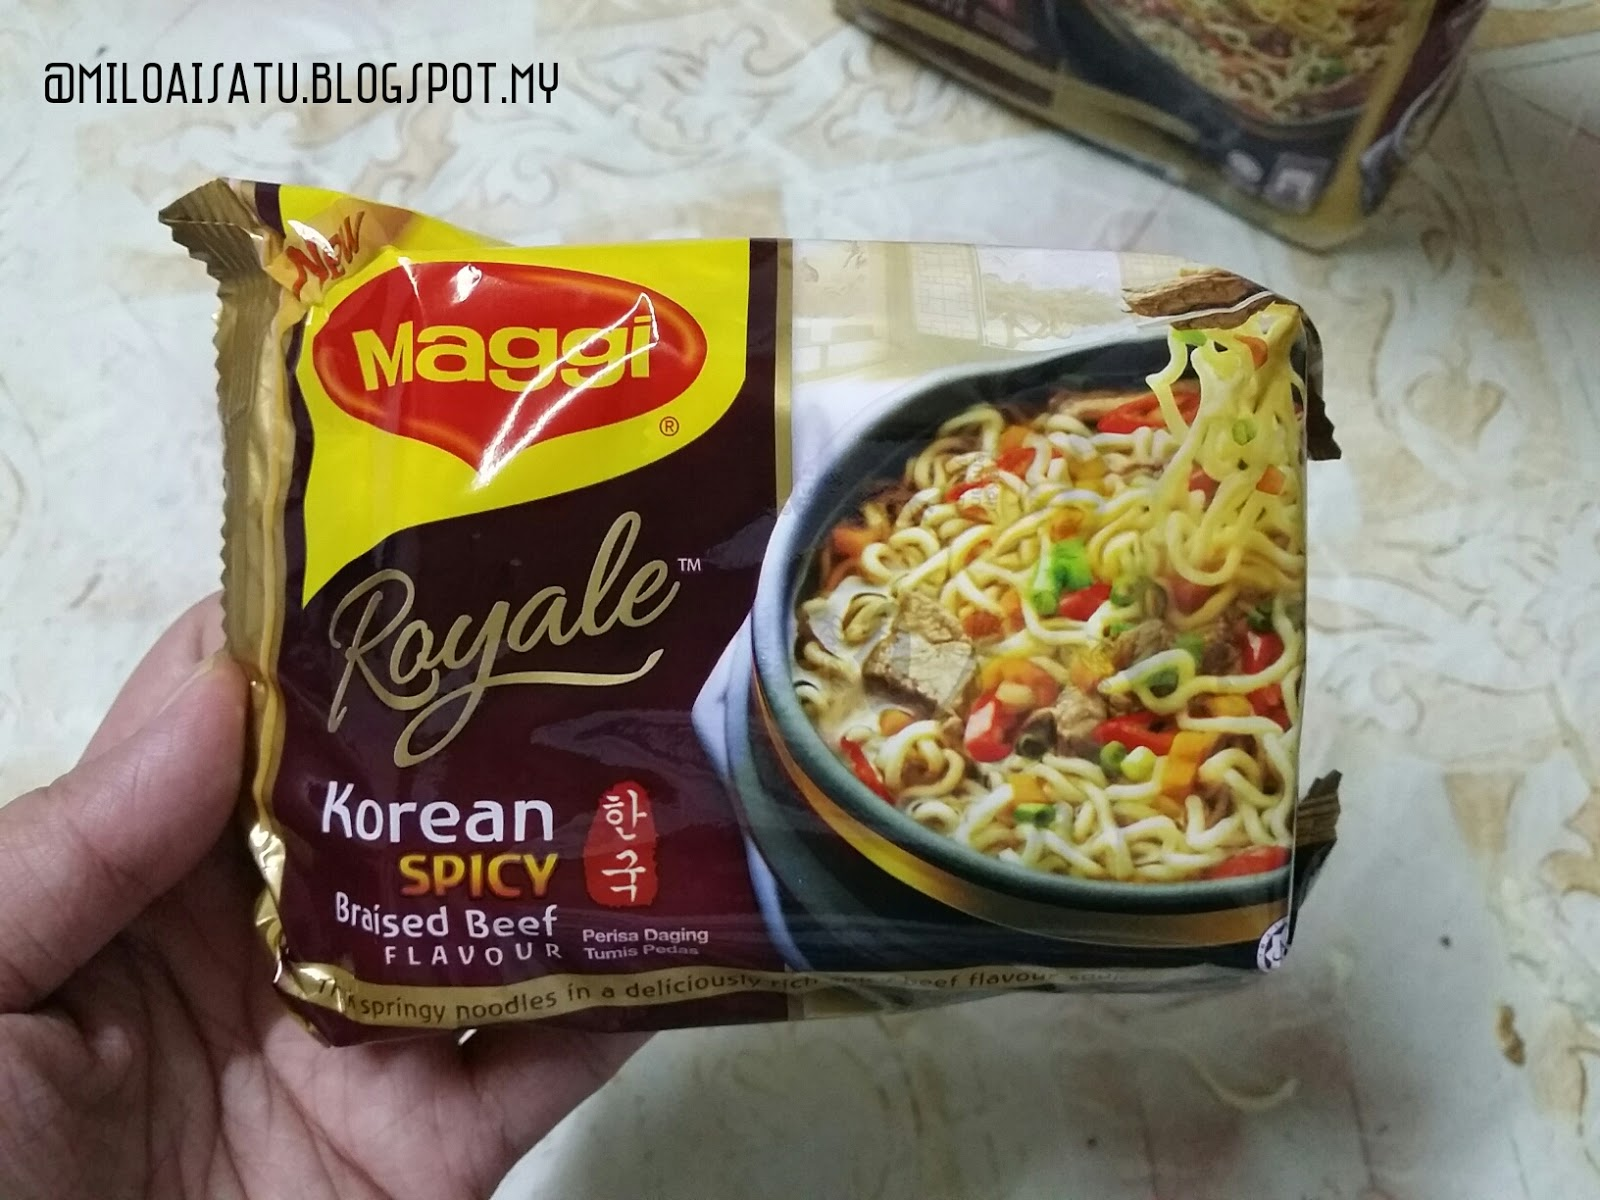 Best Instant Noodle Nissin Cup Noodles Rasa Tom Yum Asam Pedas I Love Maggi Royale Korean Spicy Beefnote Dont Like Mamee Chef